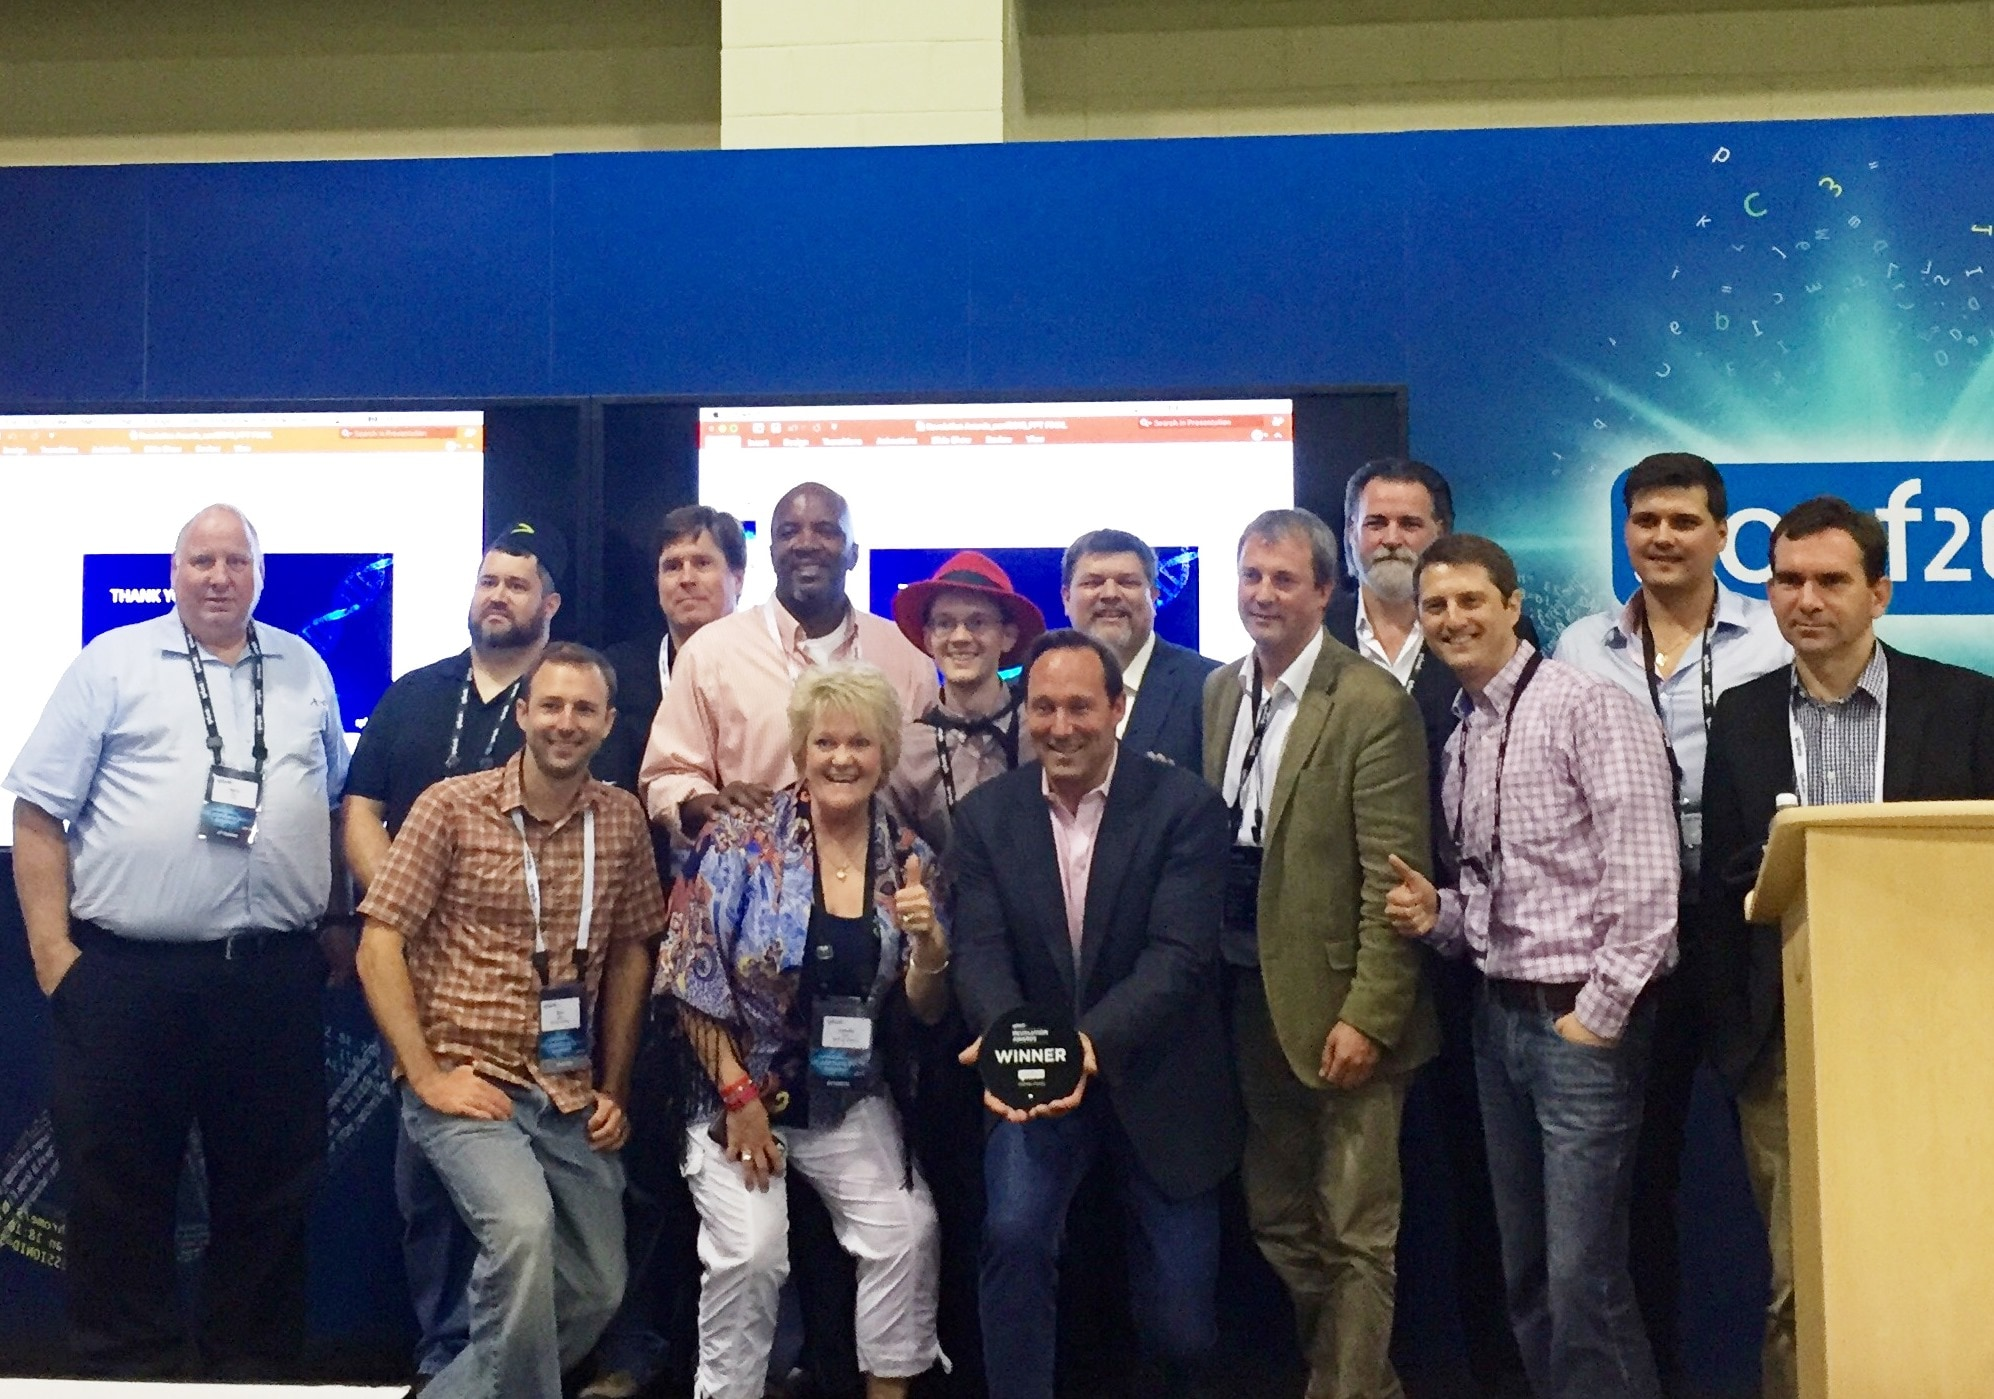 The 2016 Splunk Revolution Award Winners with Splunk CEO, Doug Merritt.